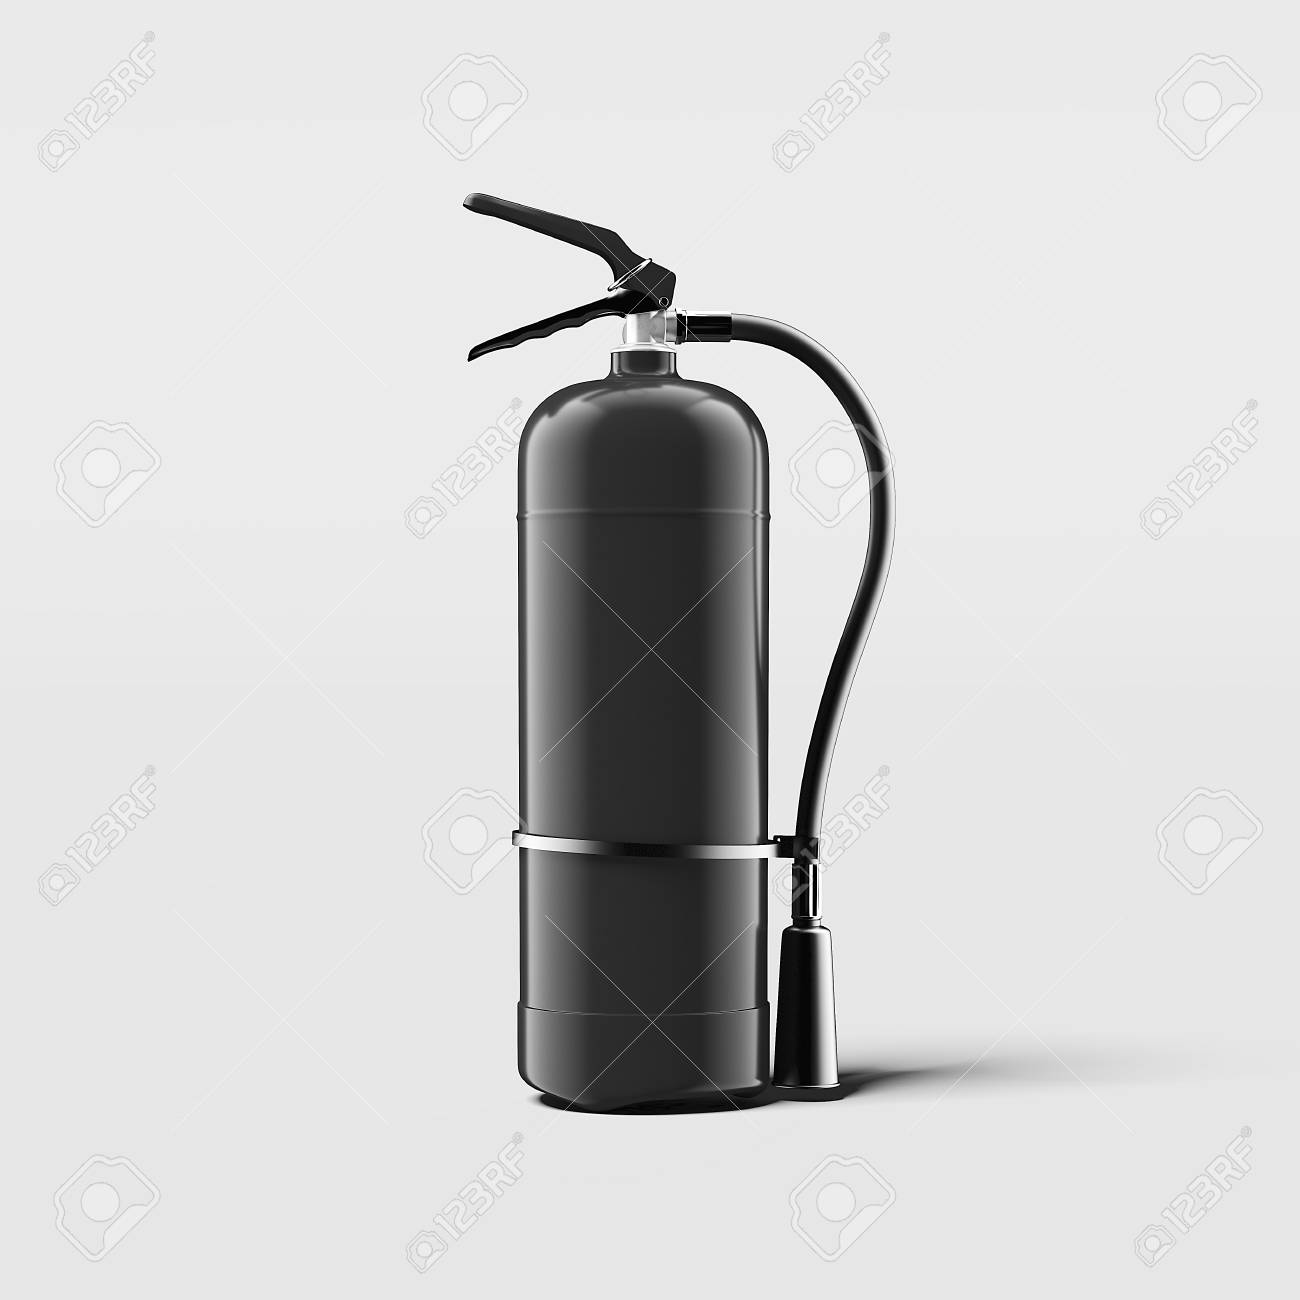 Black Fire Extinguisher On Light Grey Background 3d Rendering 1300x1300